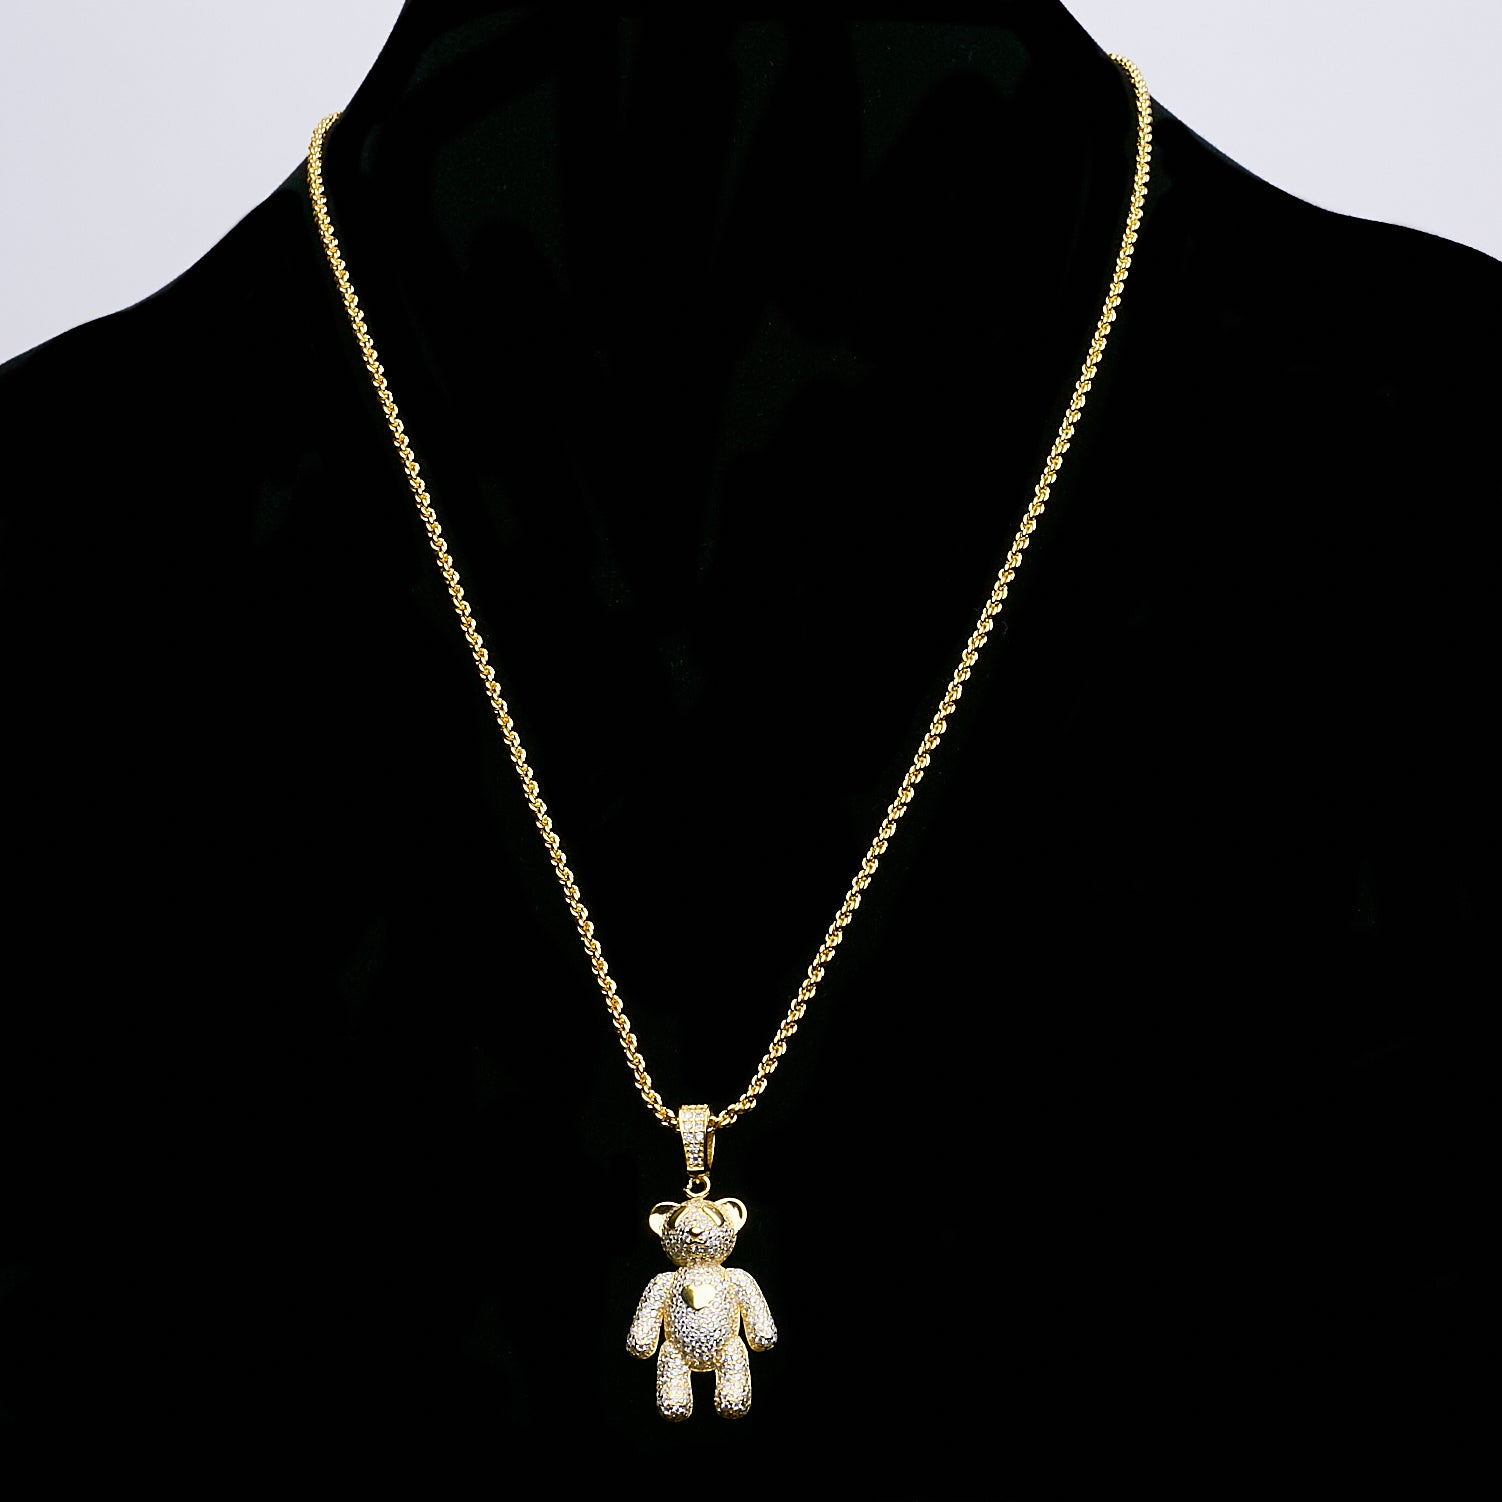 14k Iced Out Teddy Beat Silver Dipped In Gold